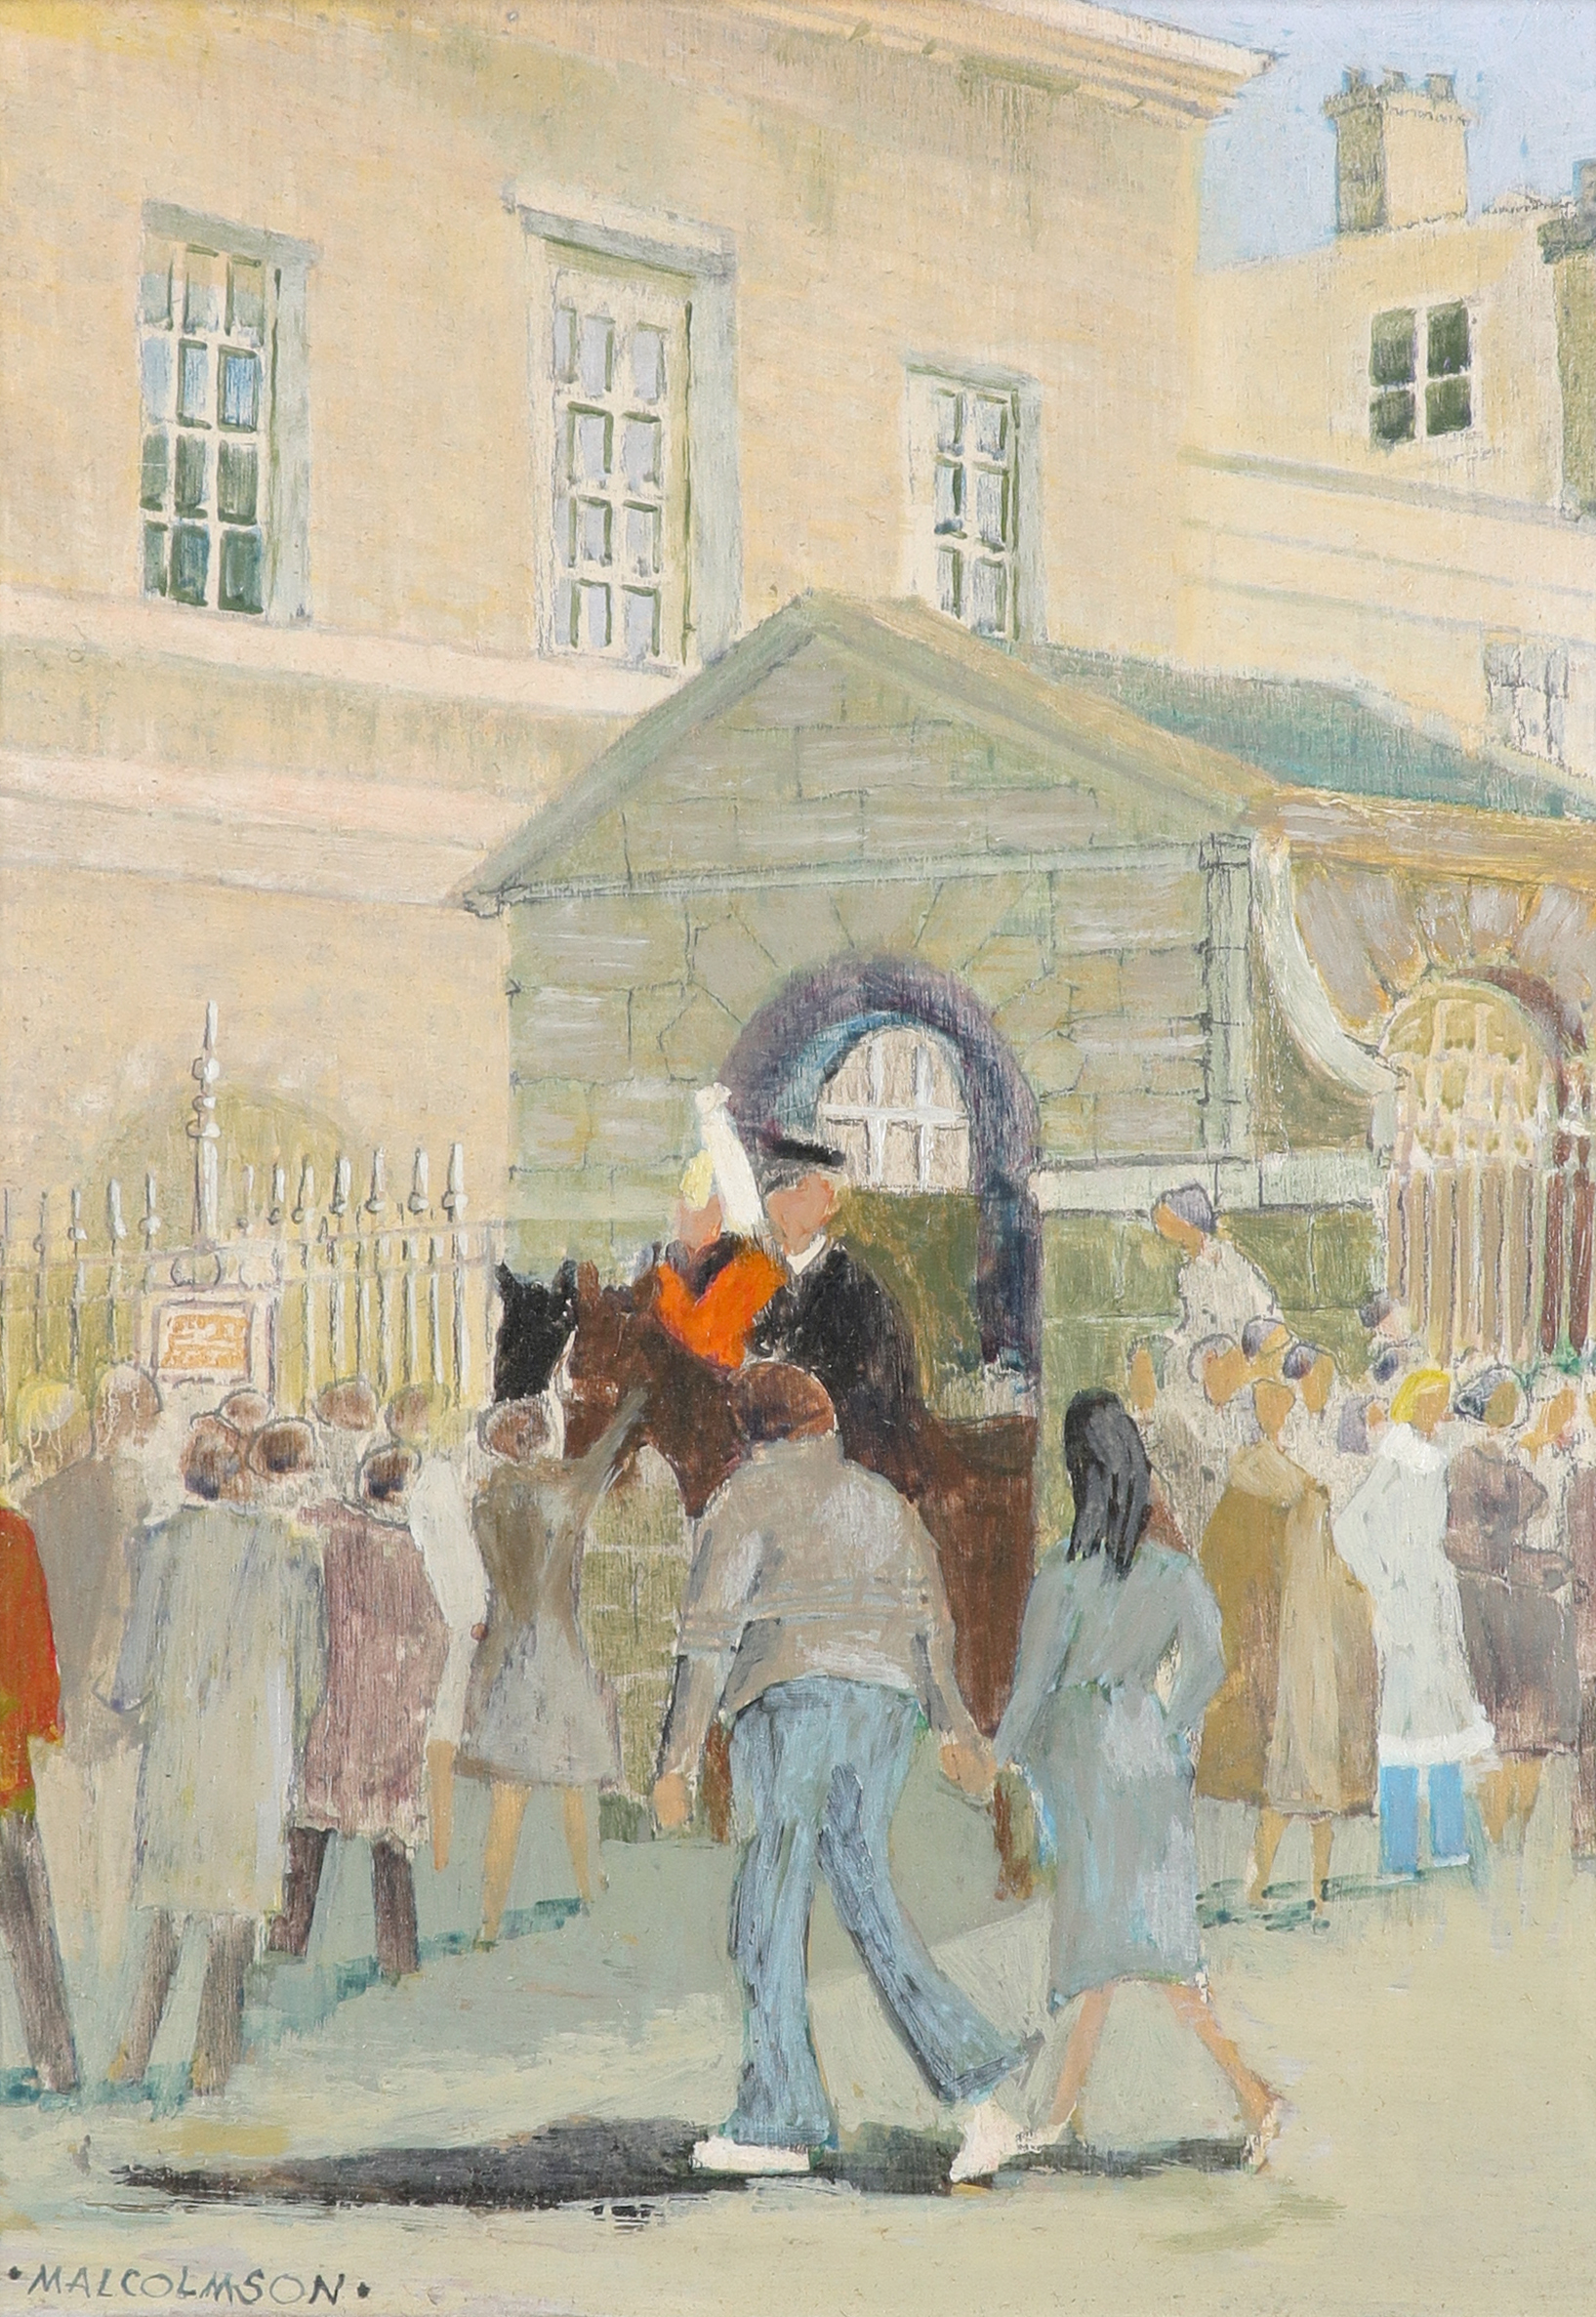 ‡Joe Malcolmson (Contemporary) The changing of the guard Signed MALCOLMSON (lower left) Oil on board